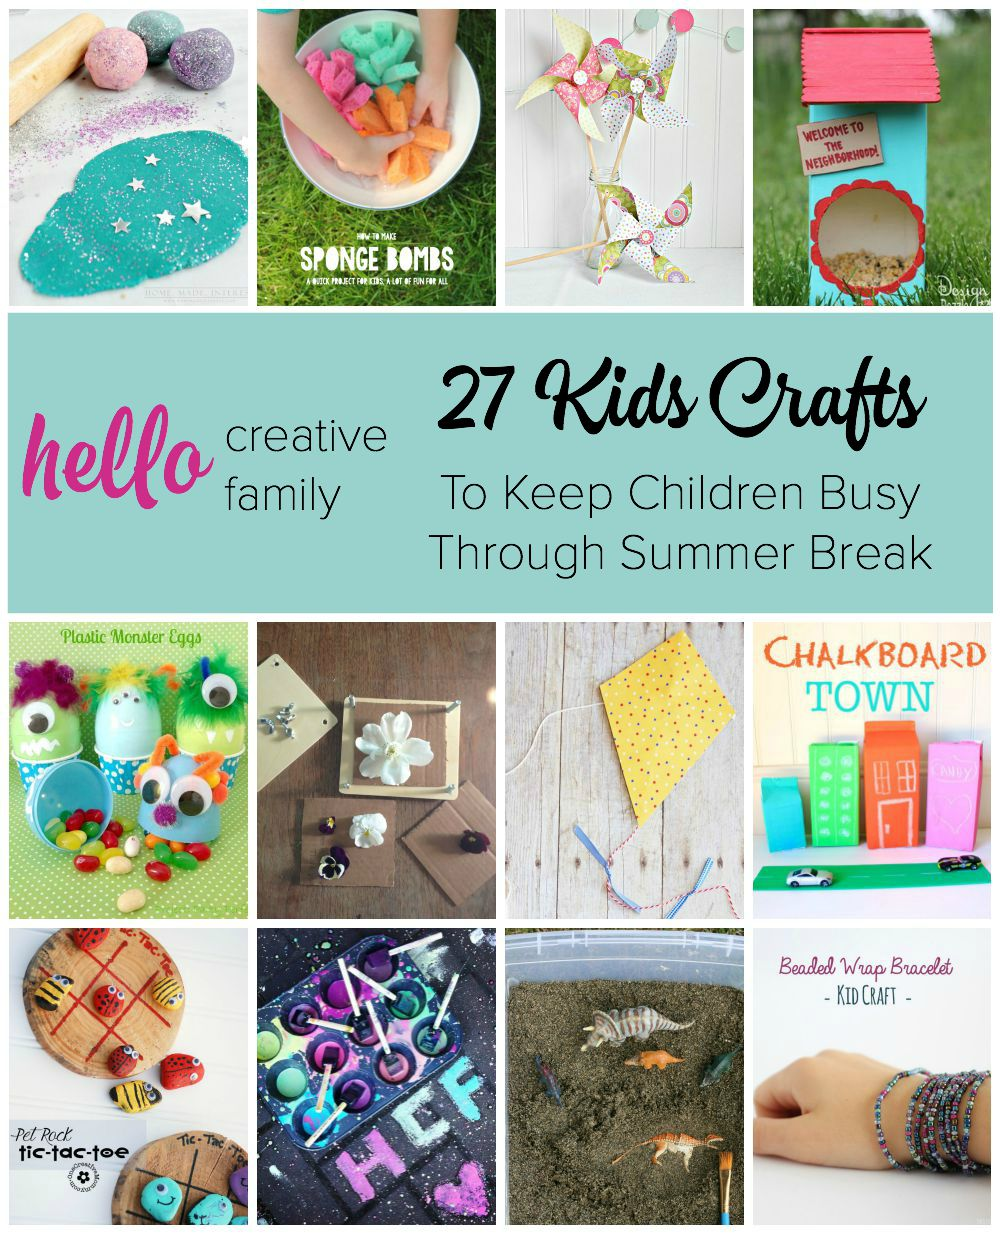 27 Kids Crafts to Keep Children Busy Through Summer Break ...